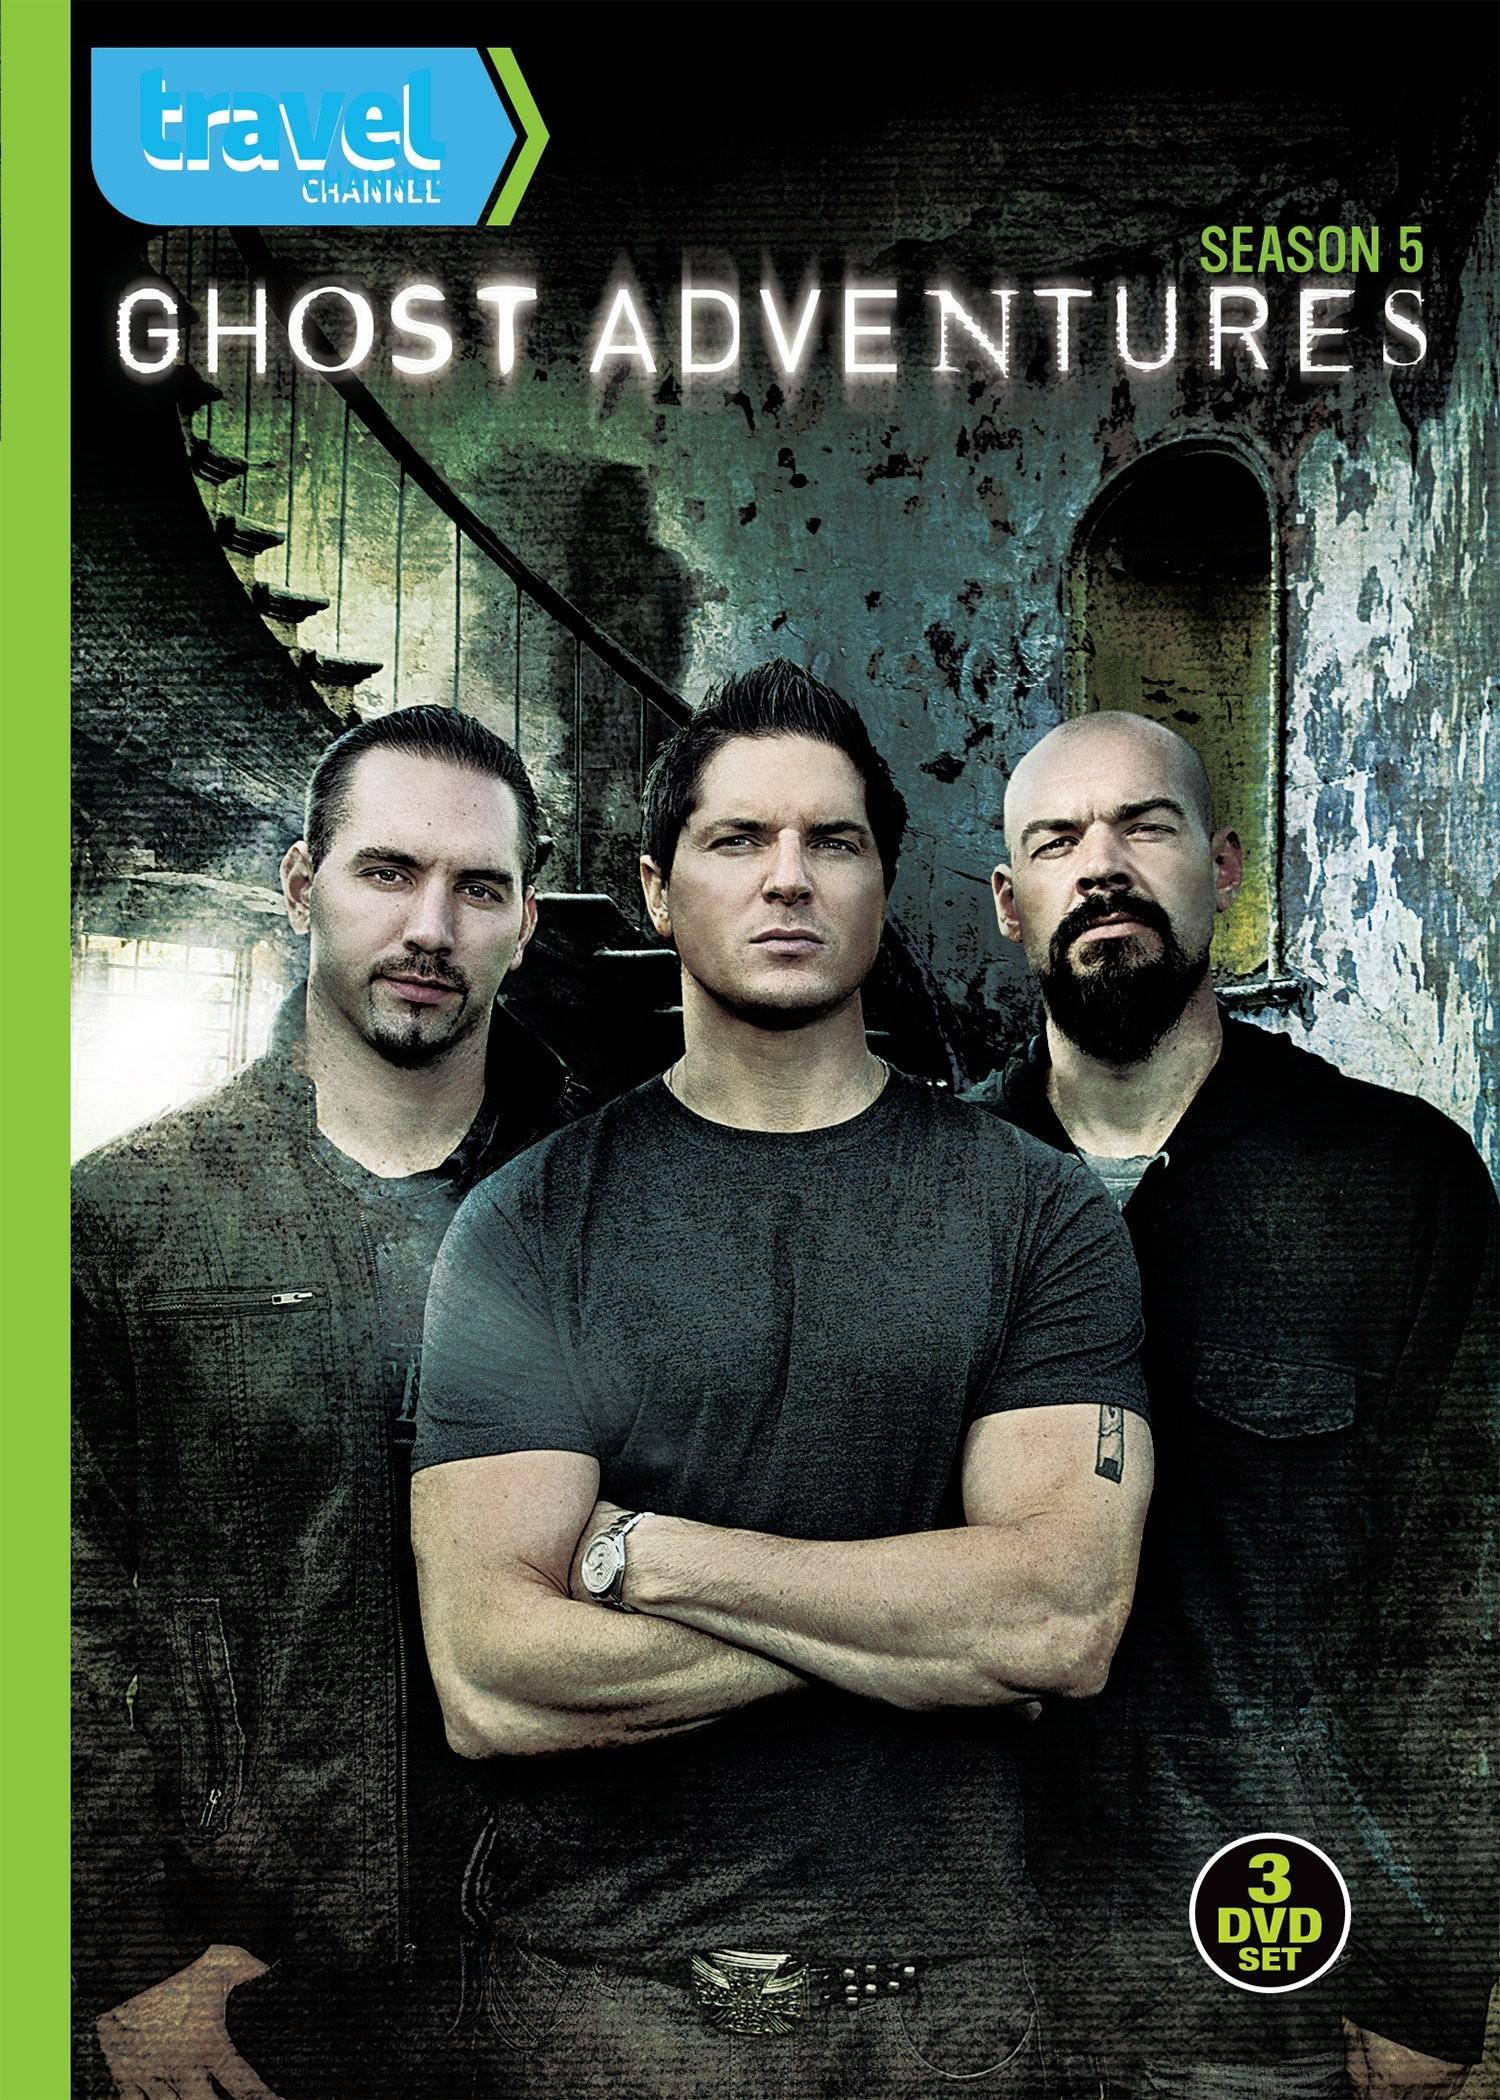 Ghost Adventures Wallpaper for iPhone (84+ images)